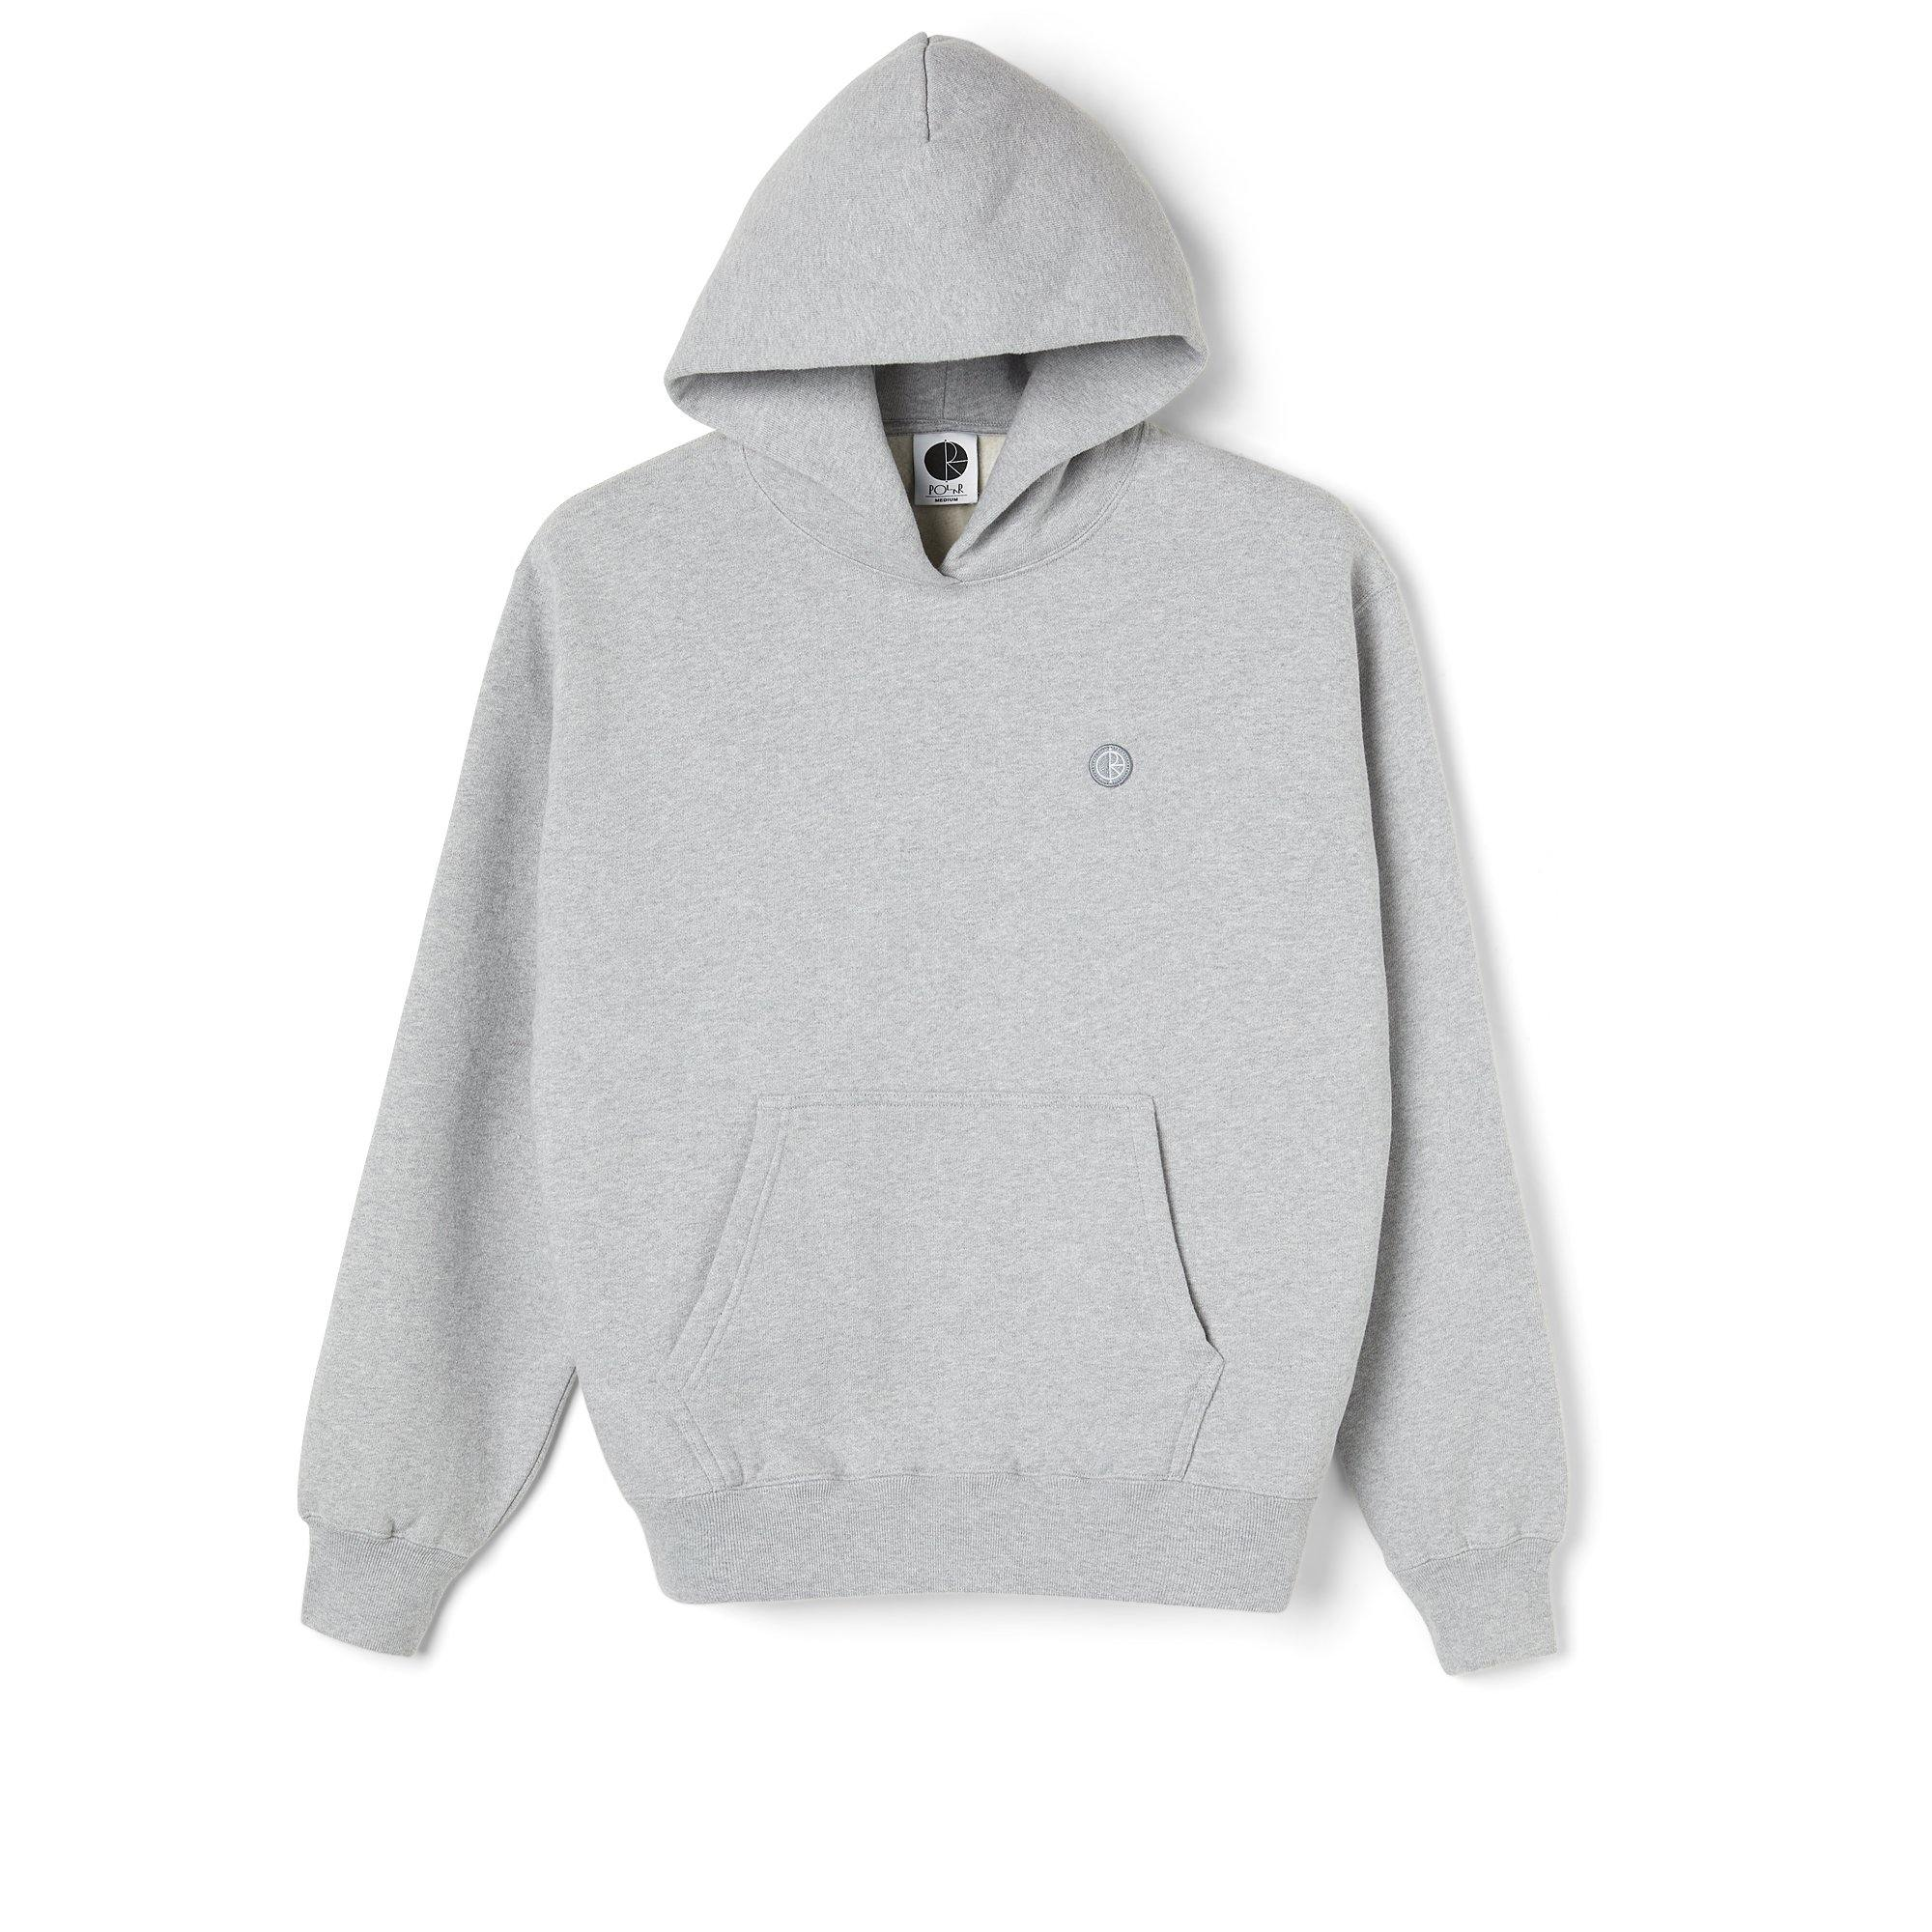 Sweatshirt Capuche POLAR Patch Hoodie Sports Grey - Gris